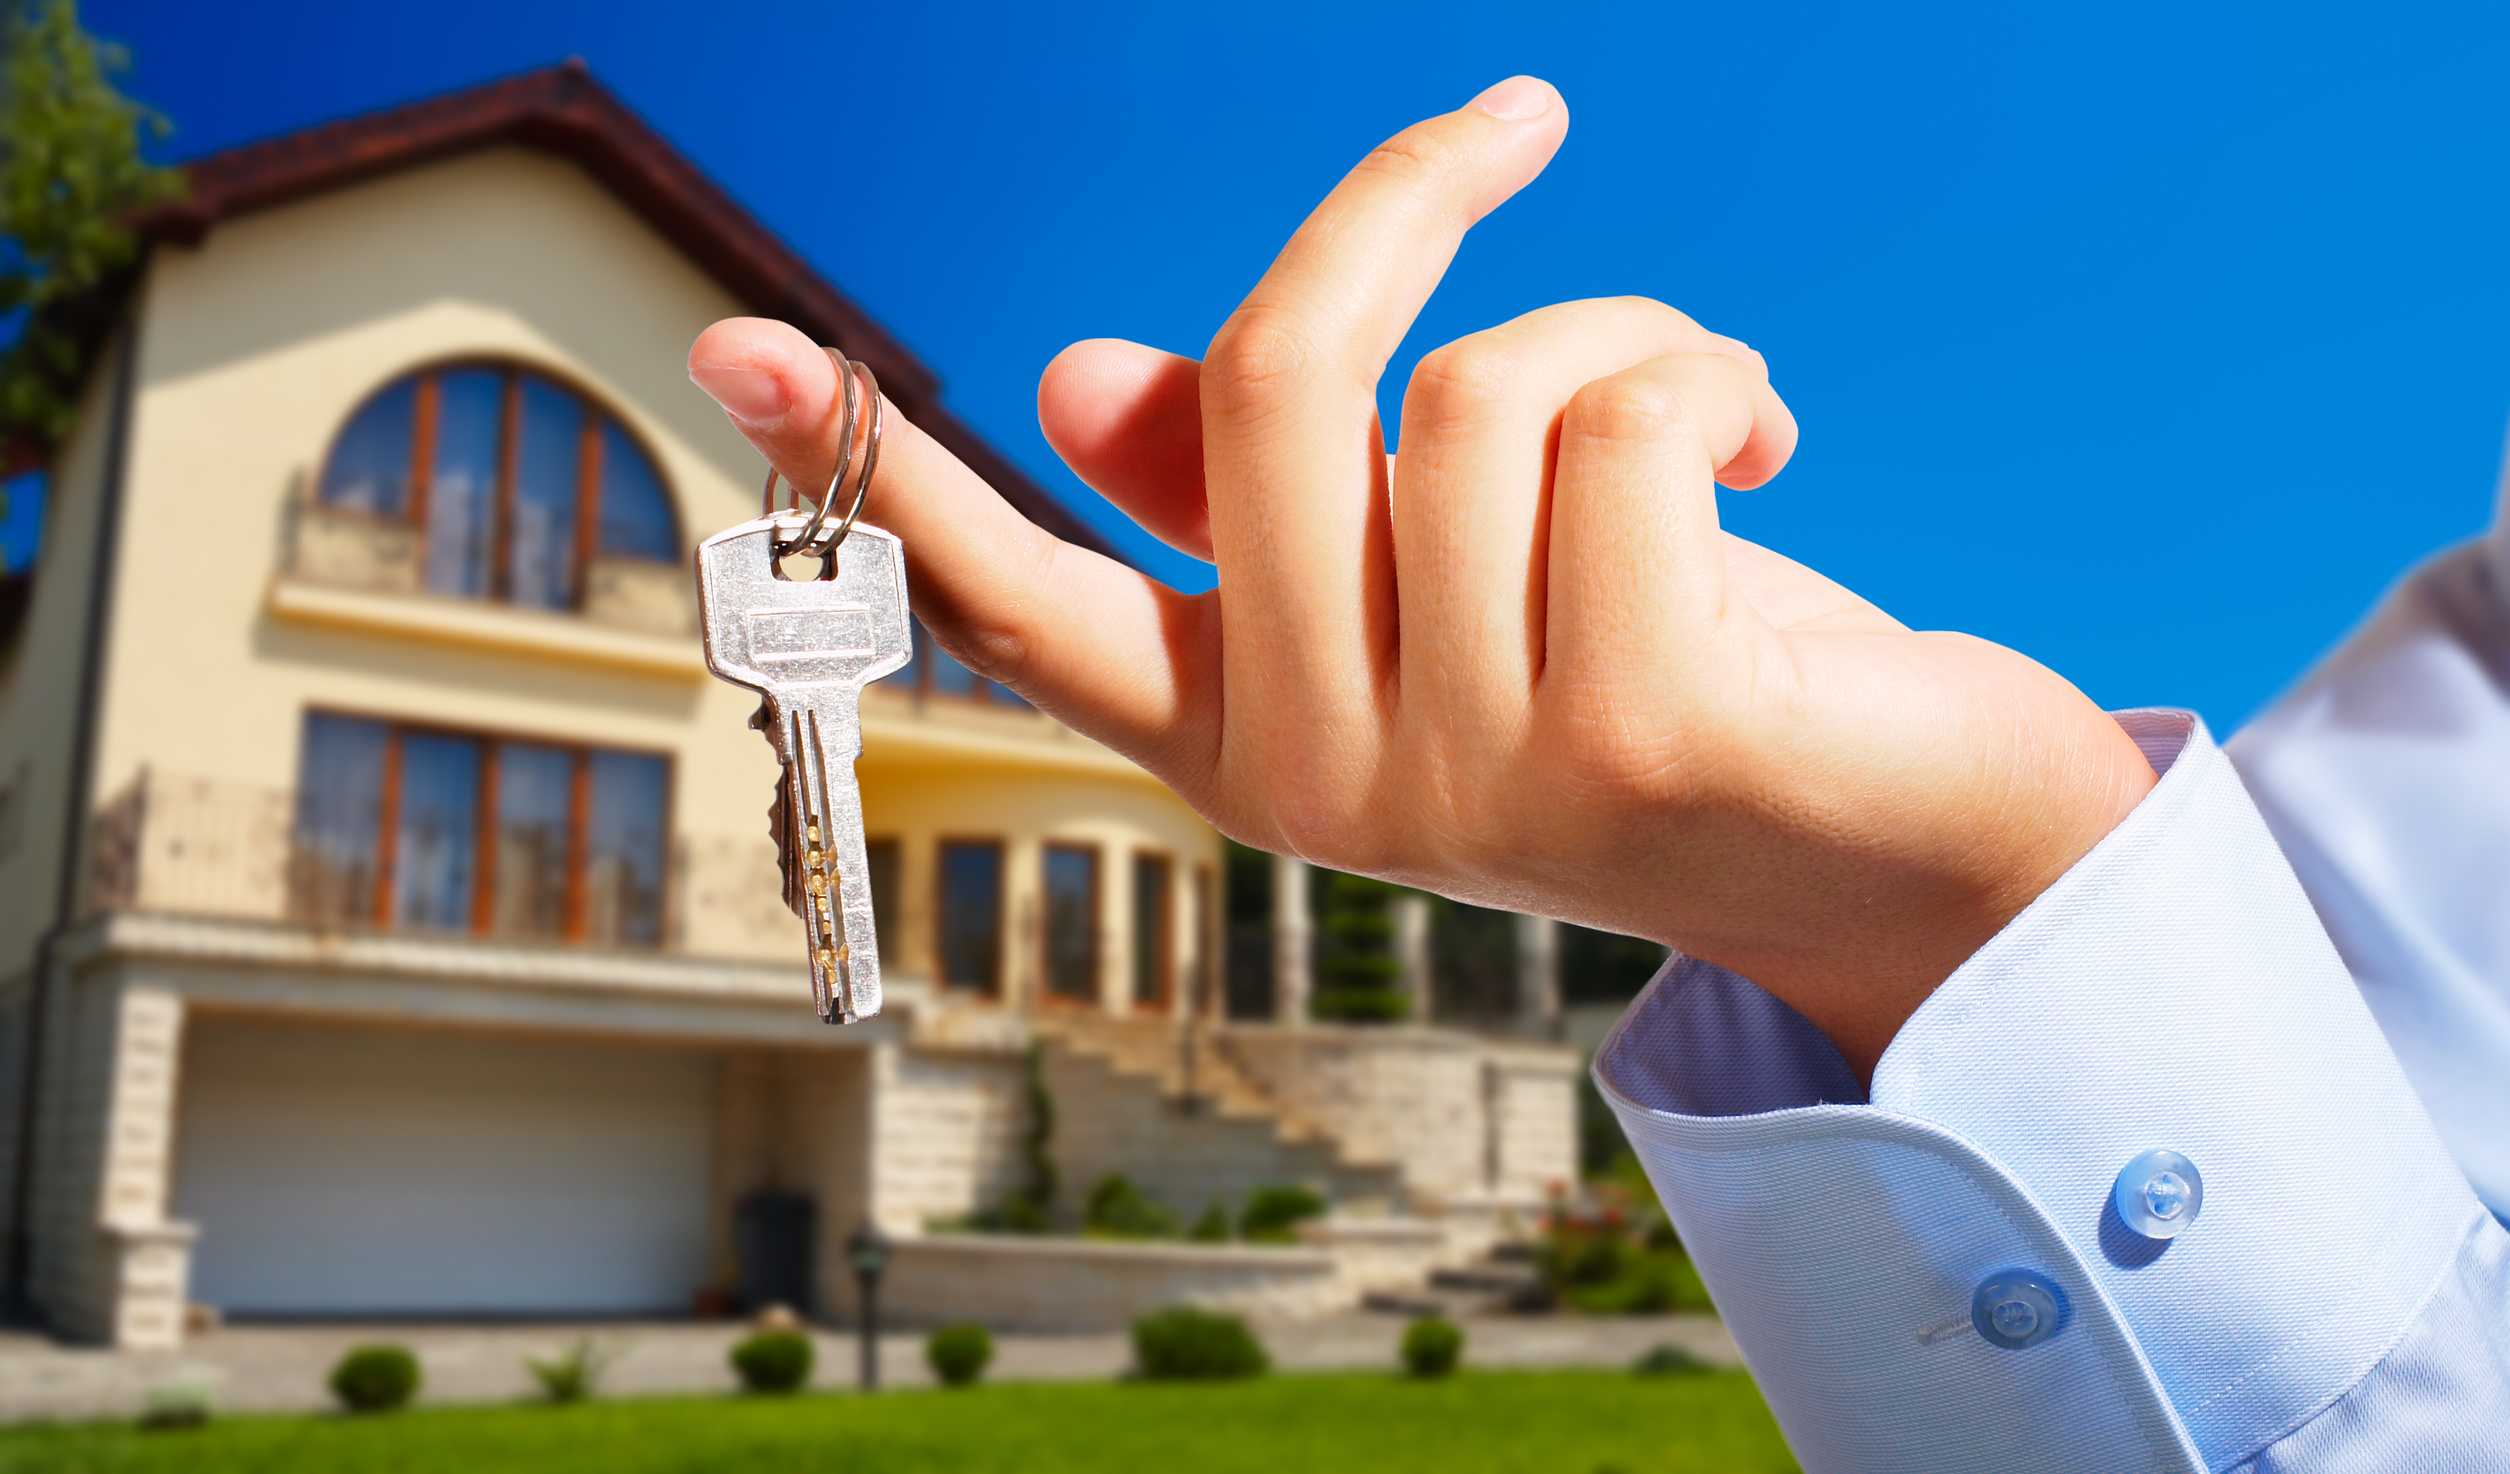 How to register a property bedfordview edenvale news for Websites for buying homes